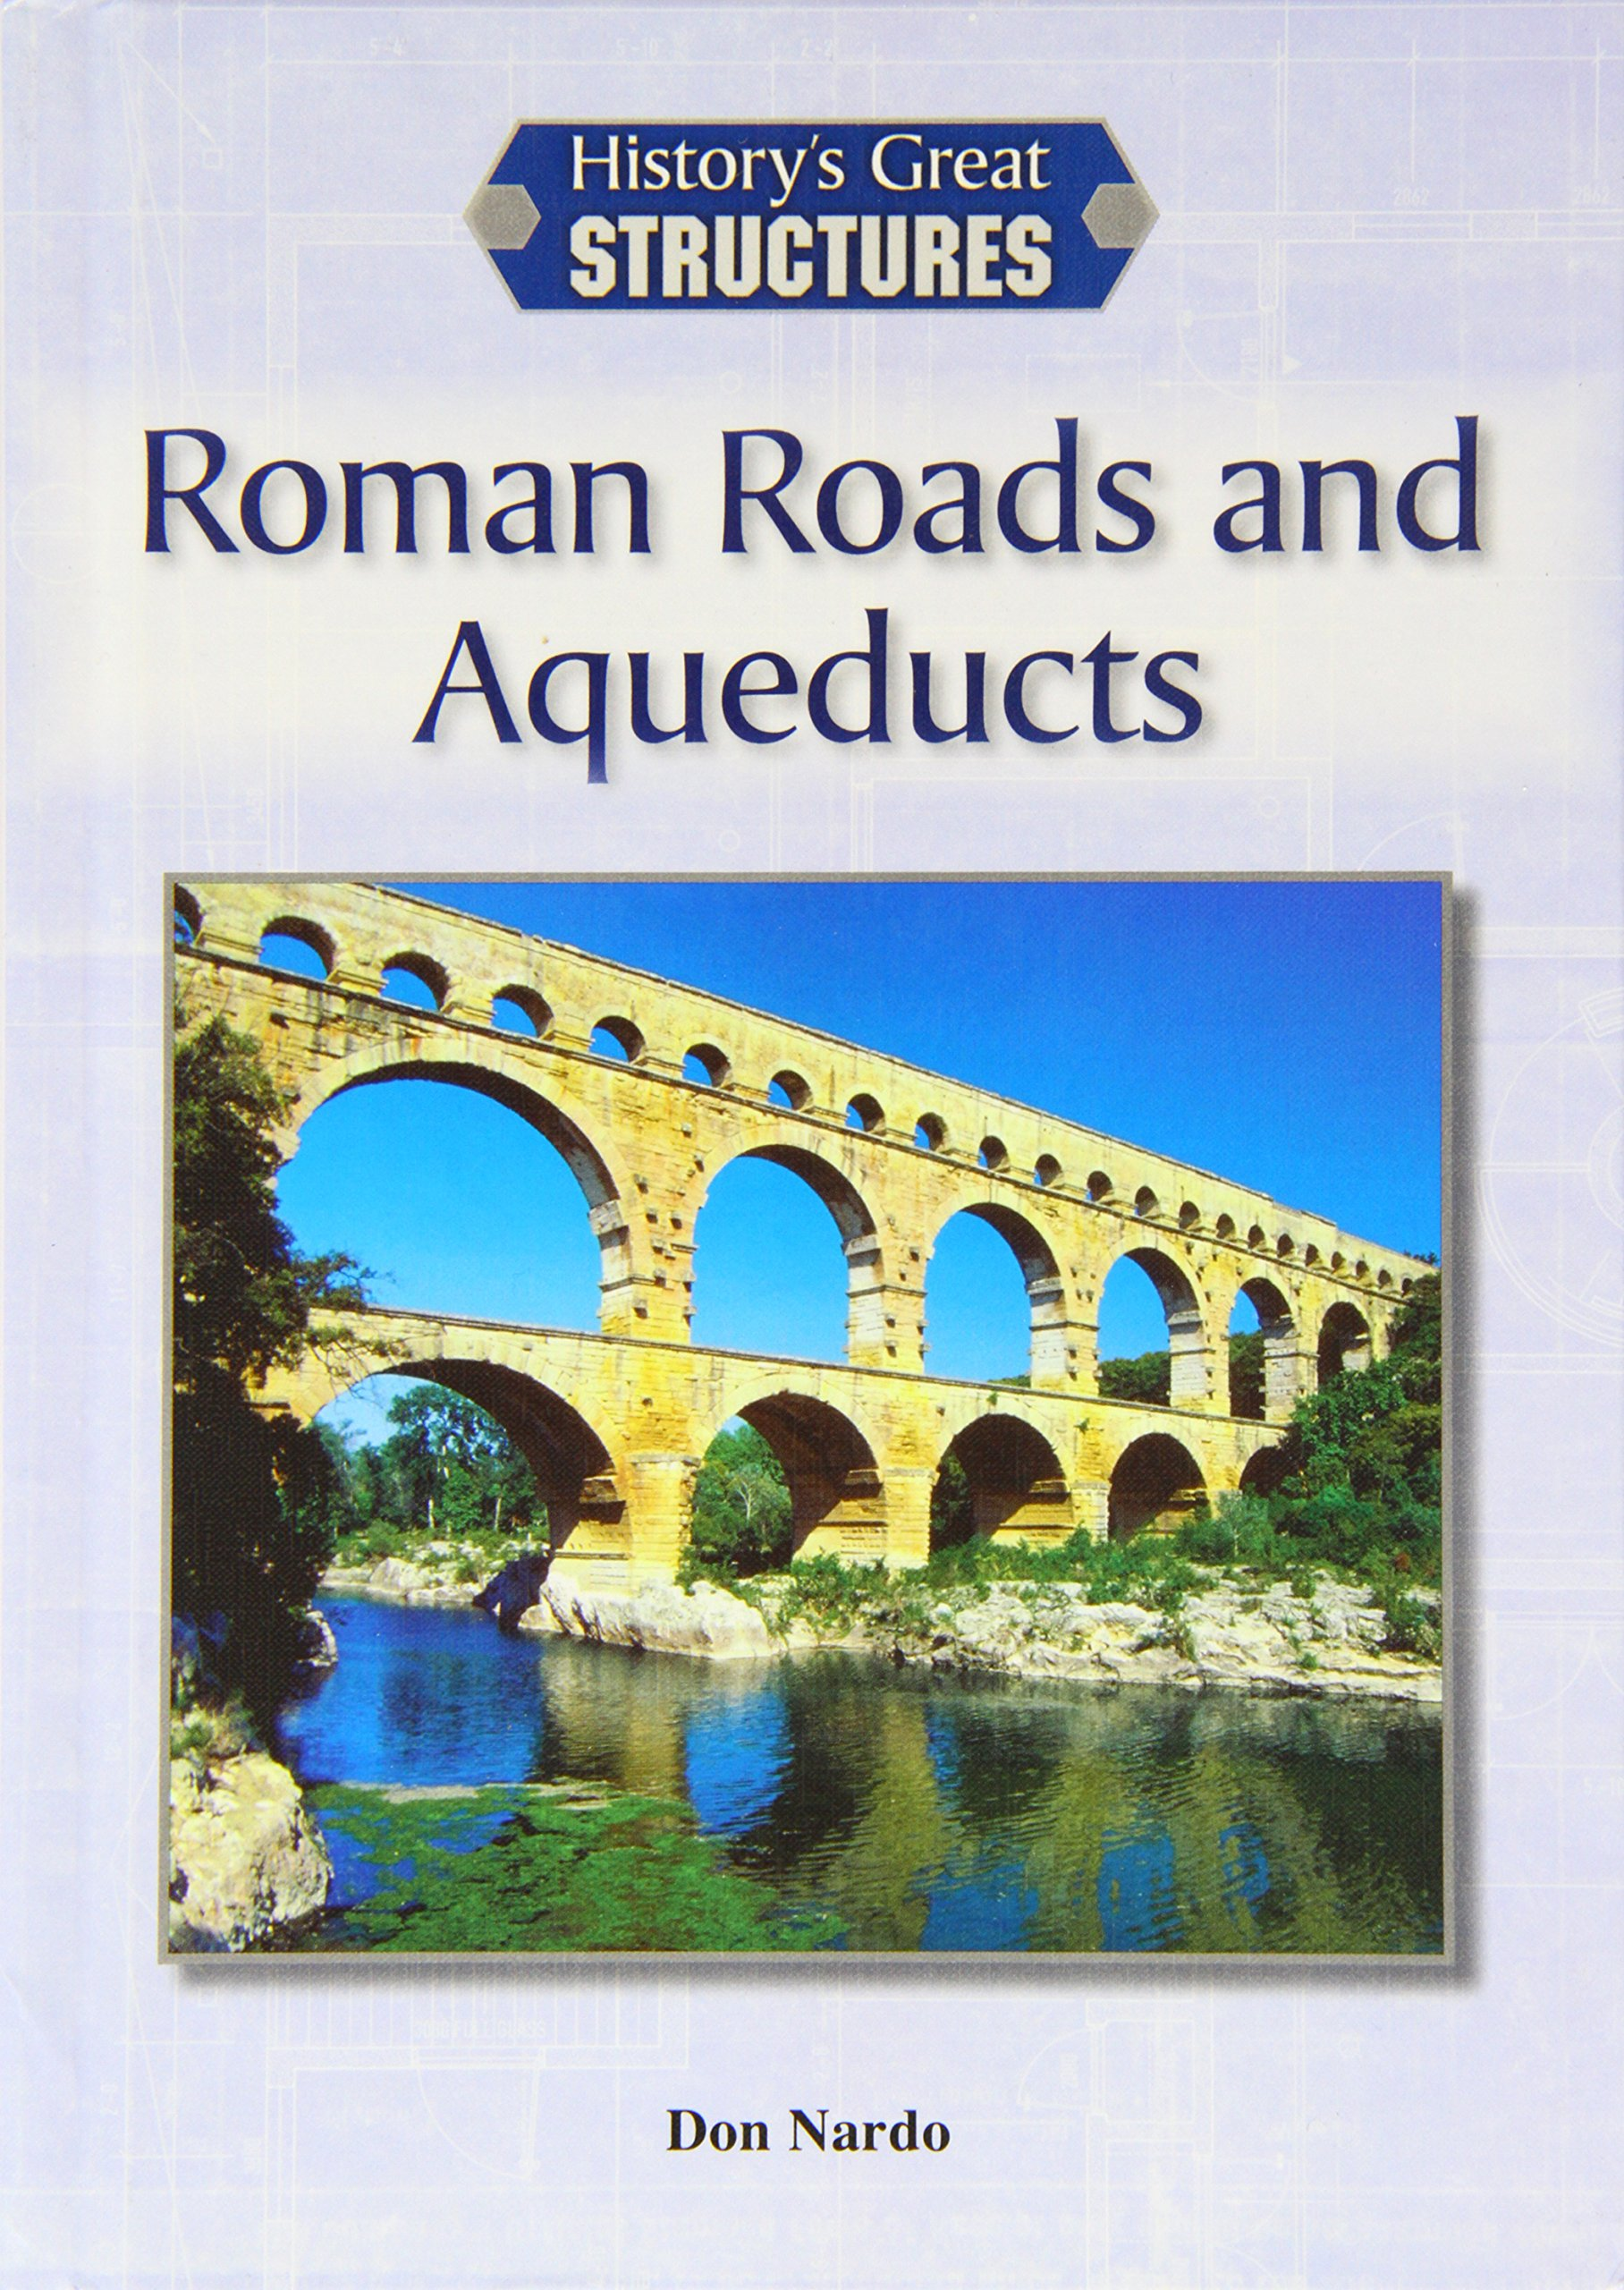 Roman Roads and Aqueducts (History's Great Structures) Hardcover – August  1, 2014